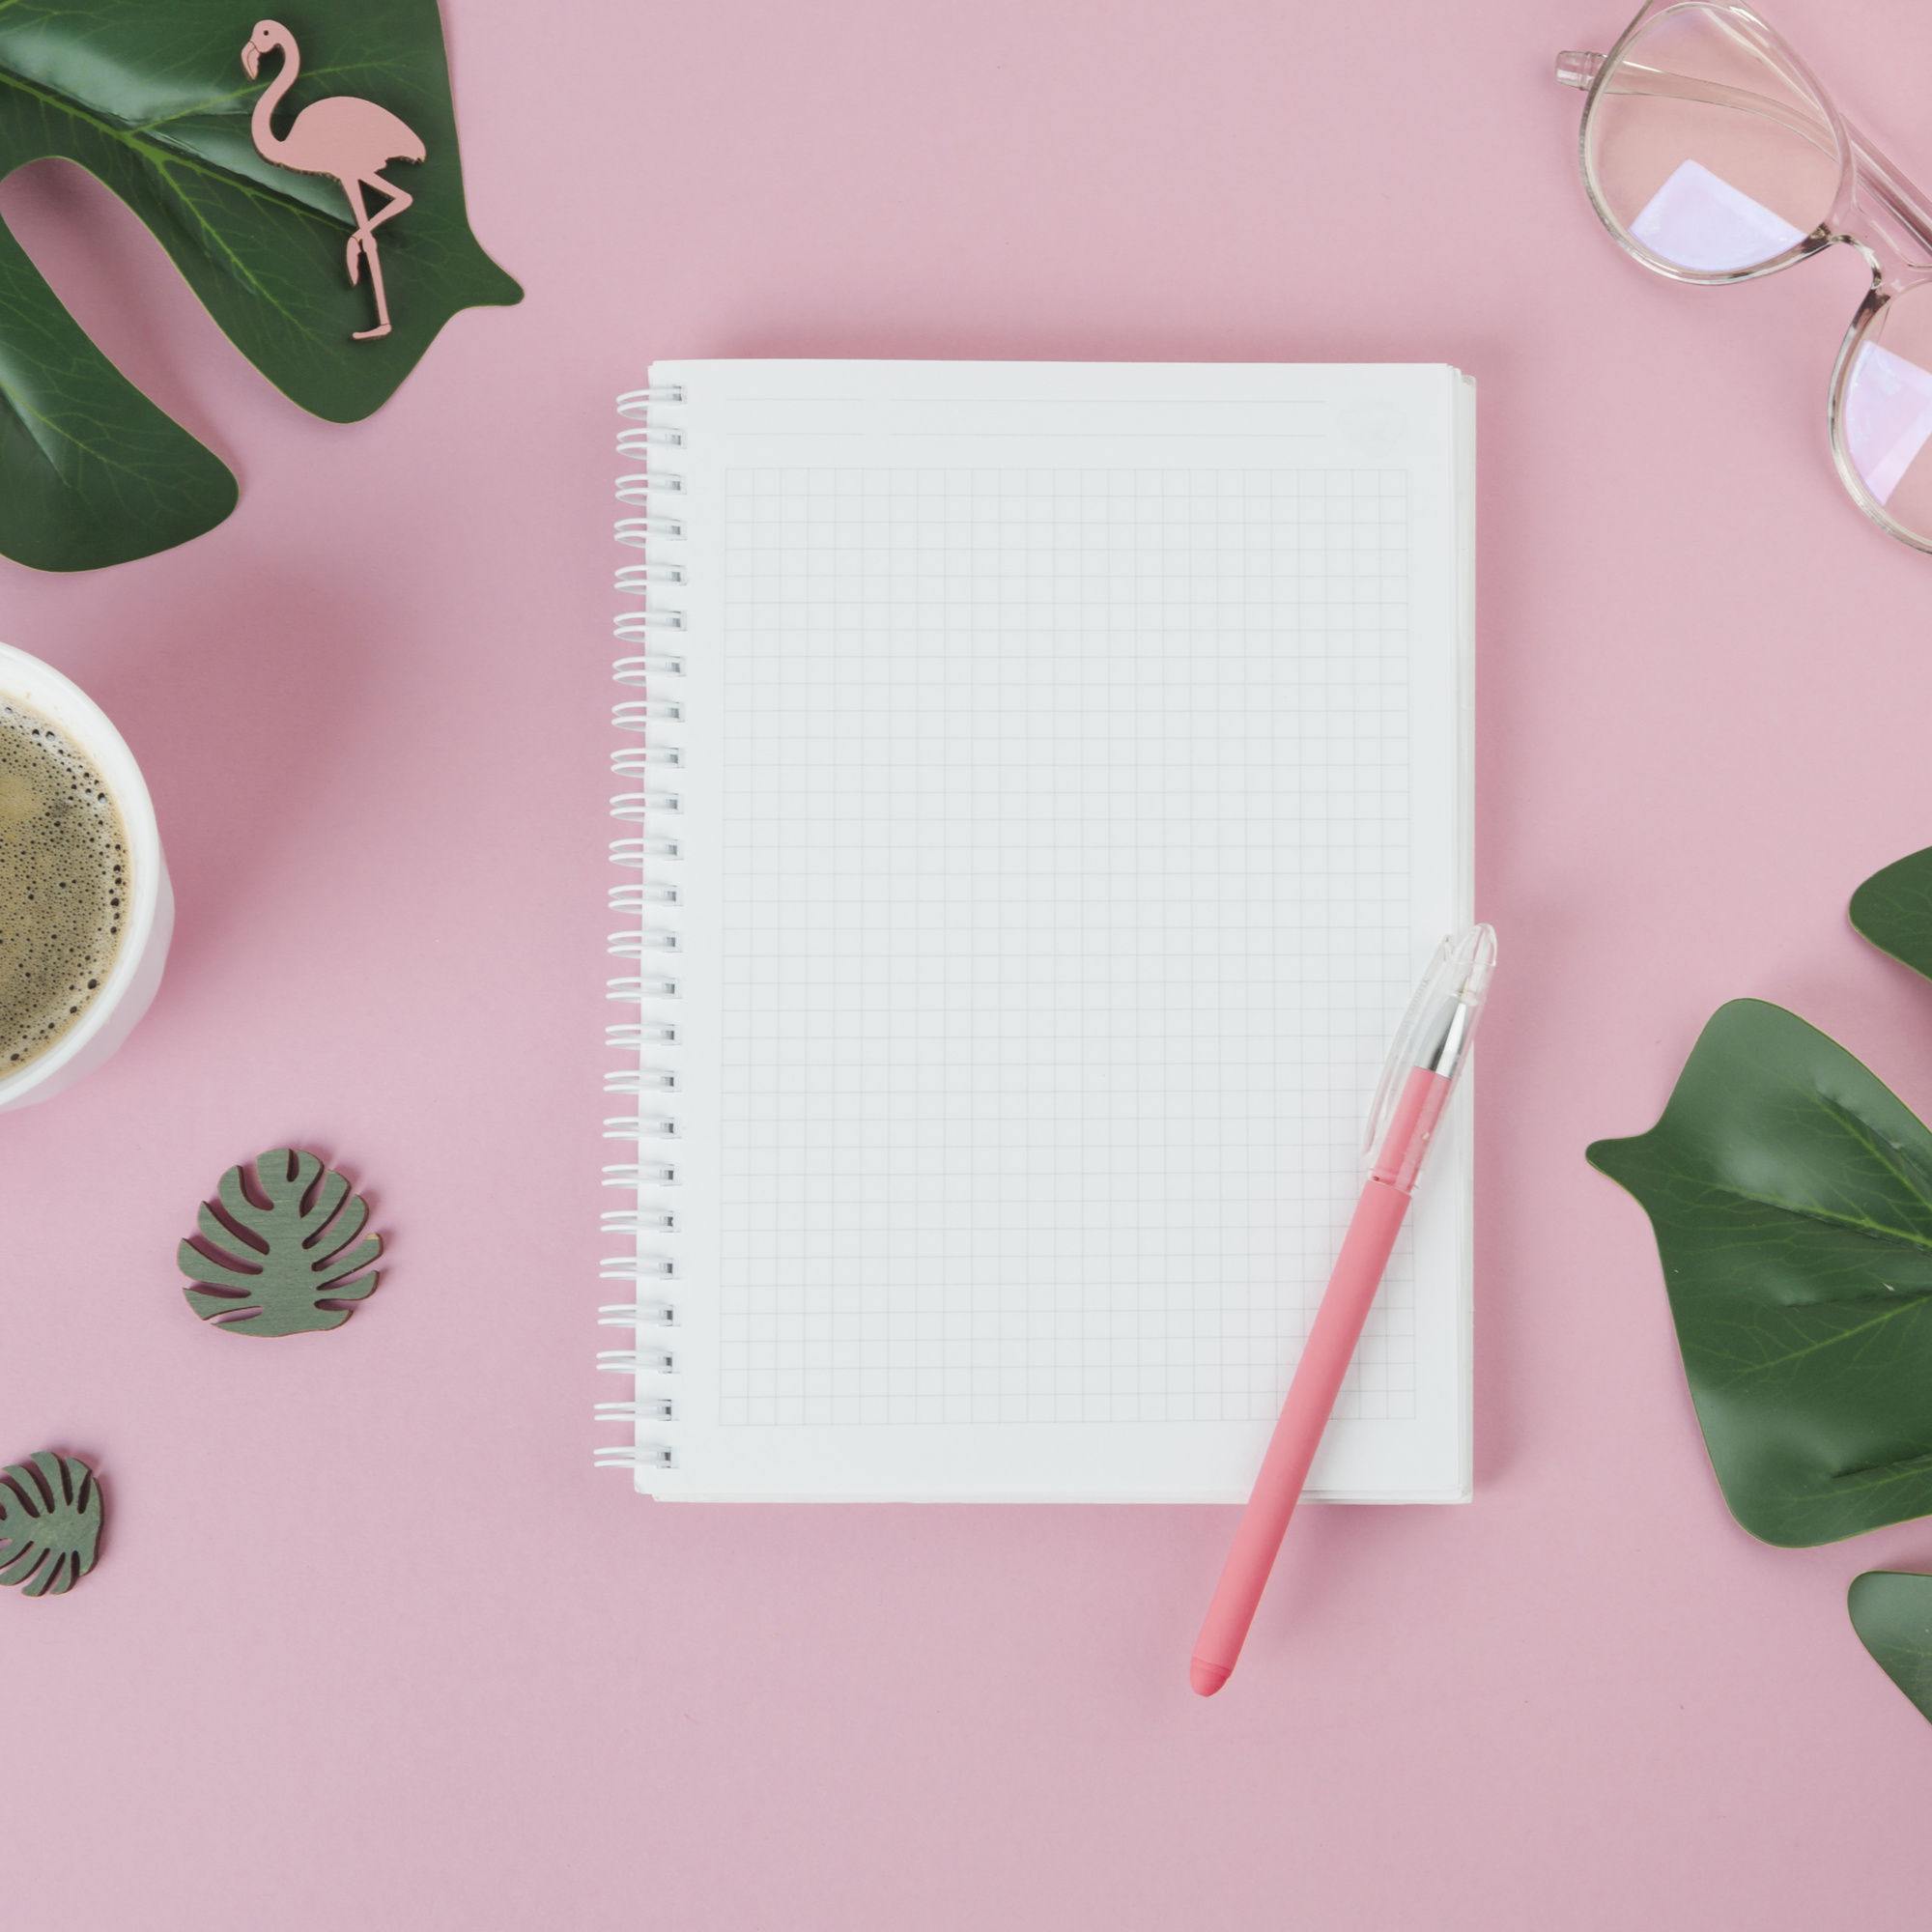 Blank notebook with pen on table